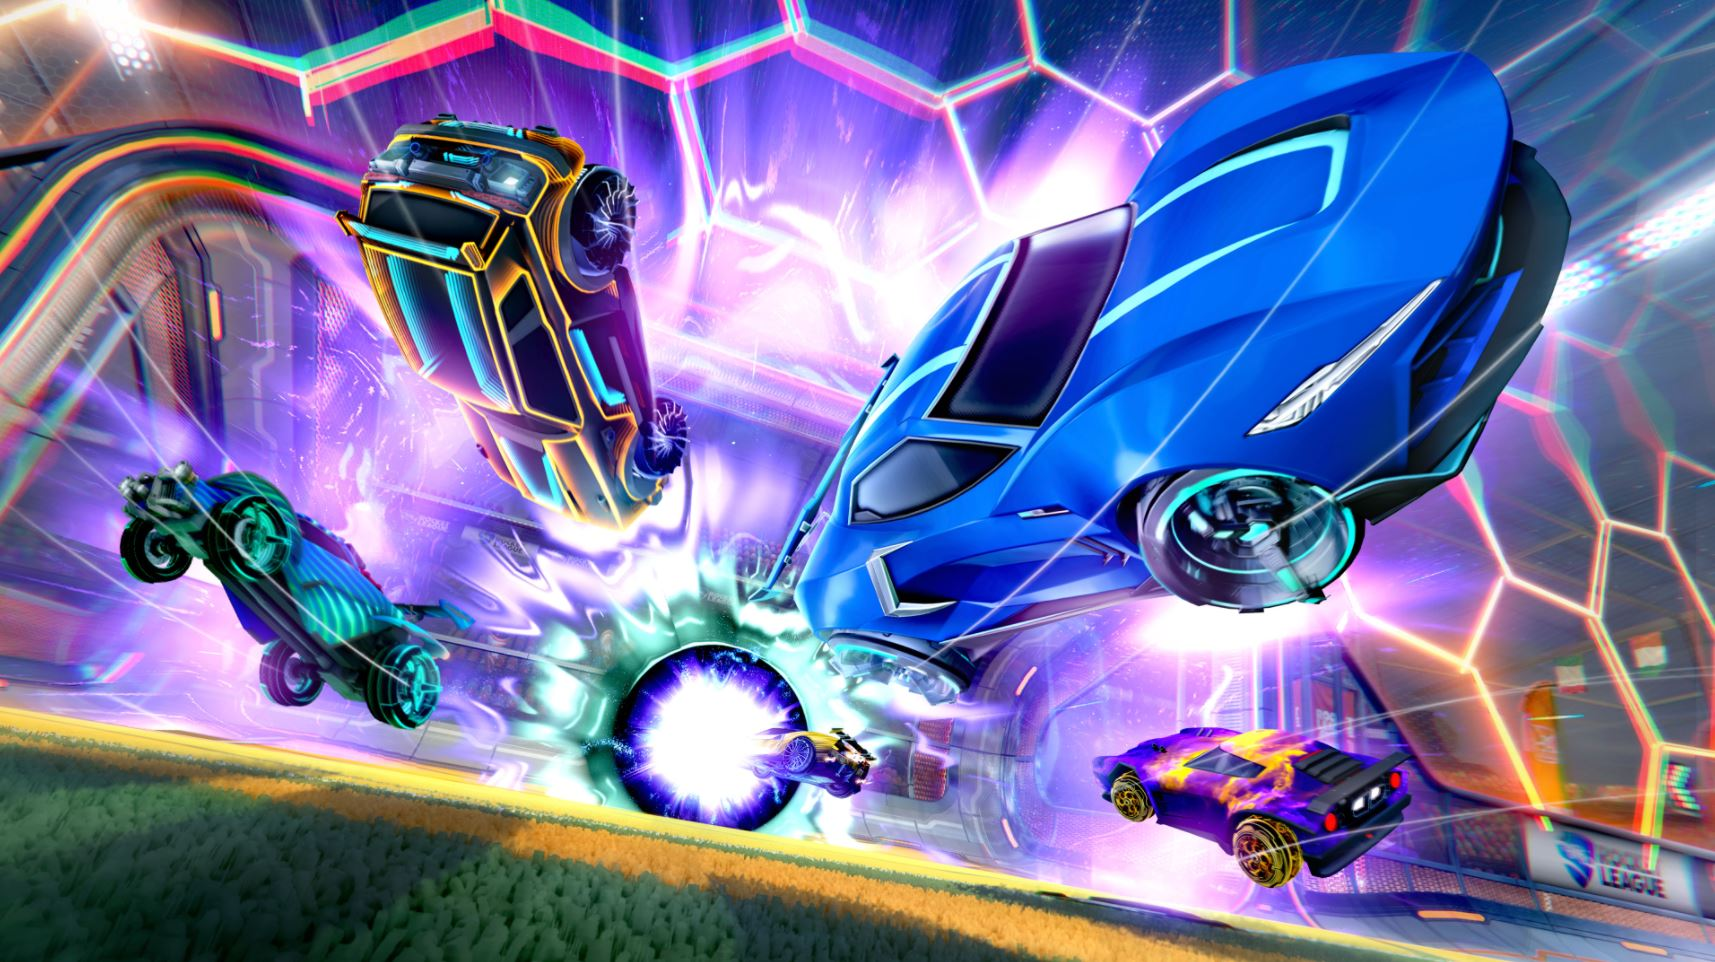 epic-games-planning-rocket-league-ps5-version-alongside-cross-play-and-cross-progression